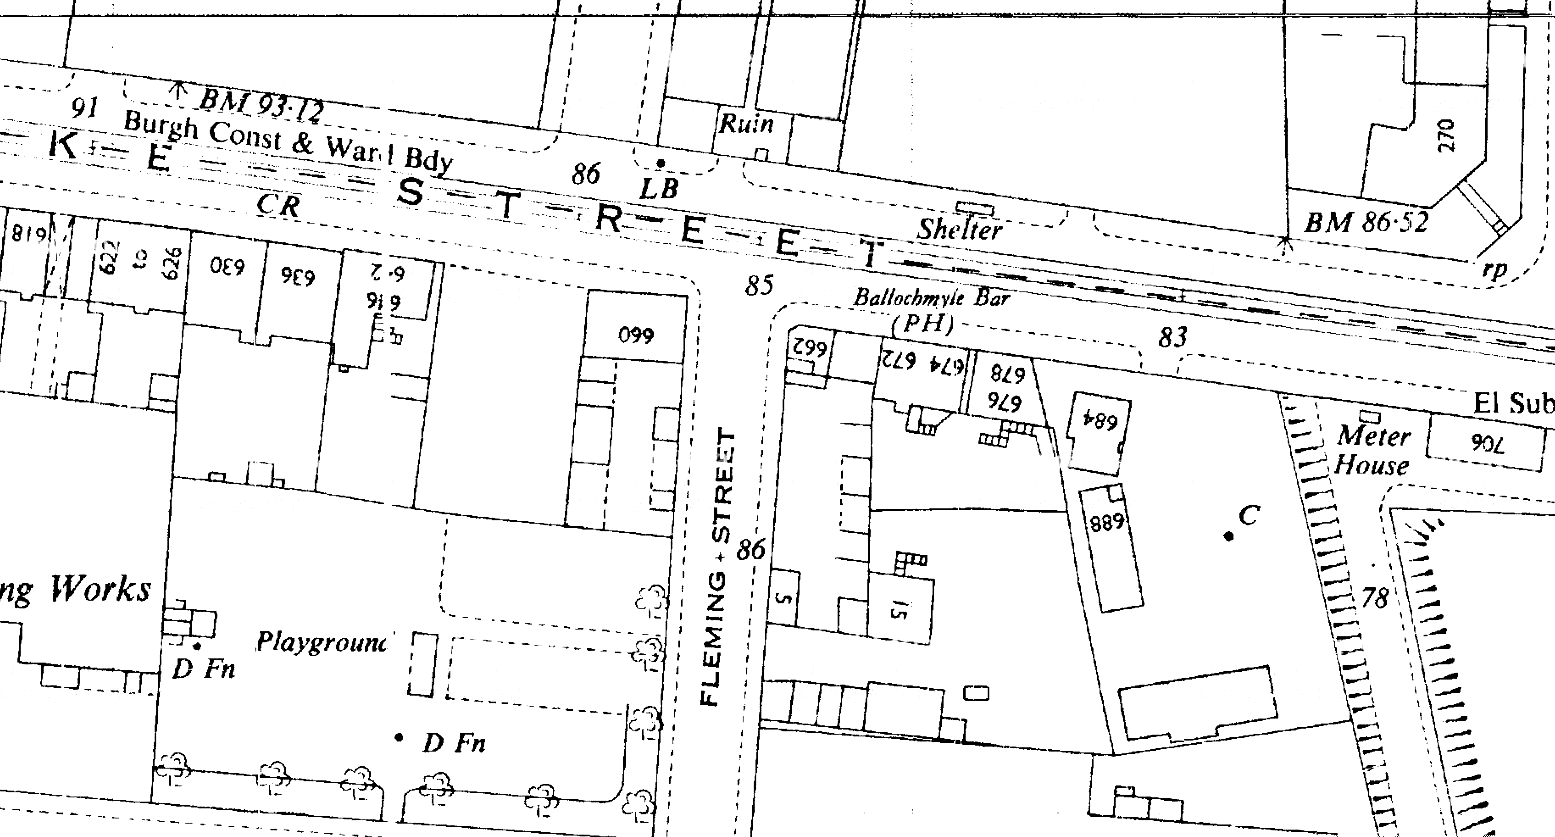 C31--Glasgow Mark 2-Fleming St at Duke St--1951-1954 OS Map Extract 1-1250.png